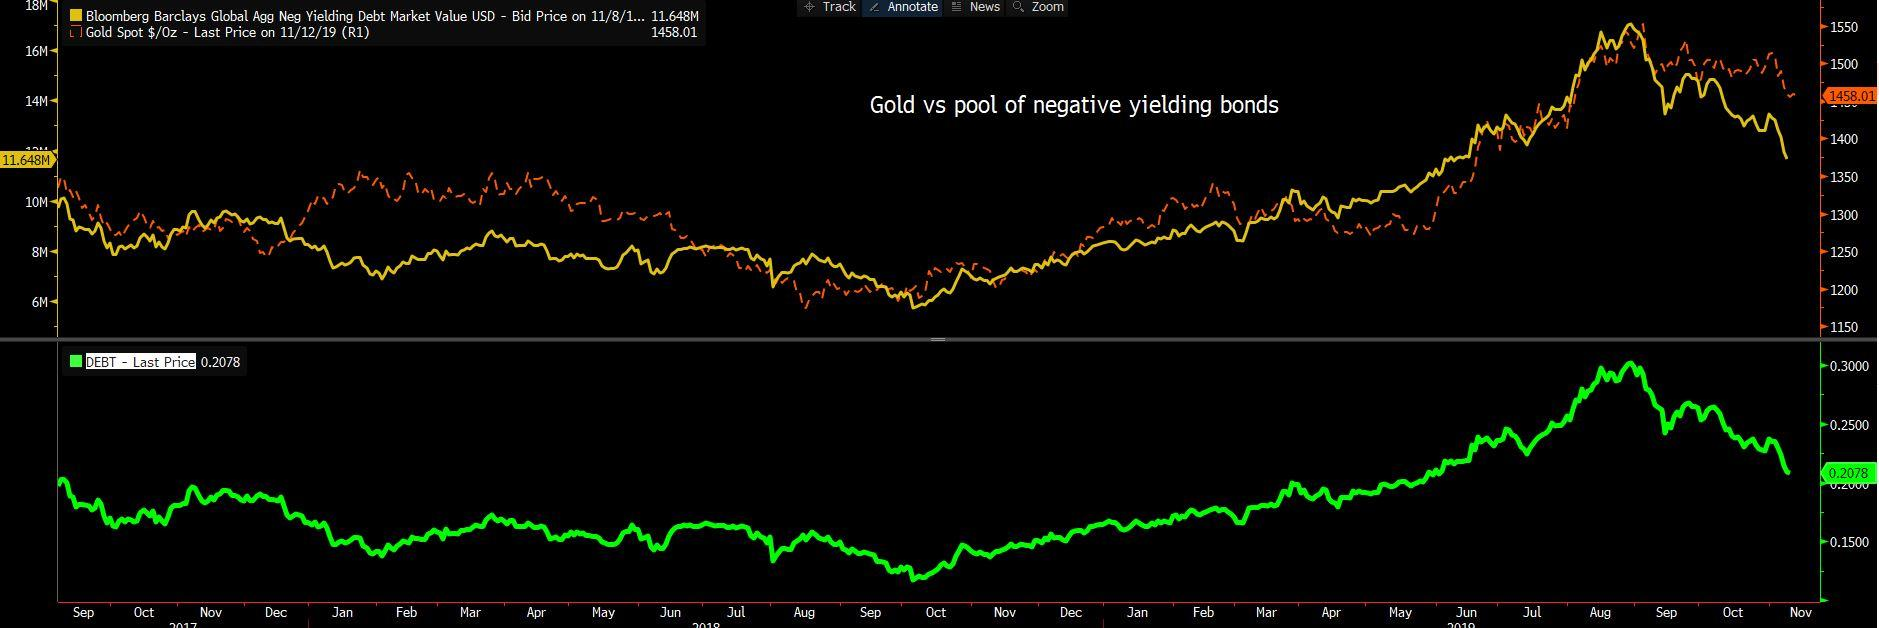 After a long period of steepening, the price of gold and the pool of negative yields have decreased since early September